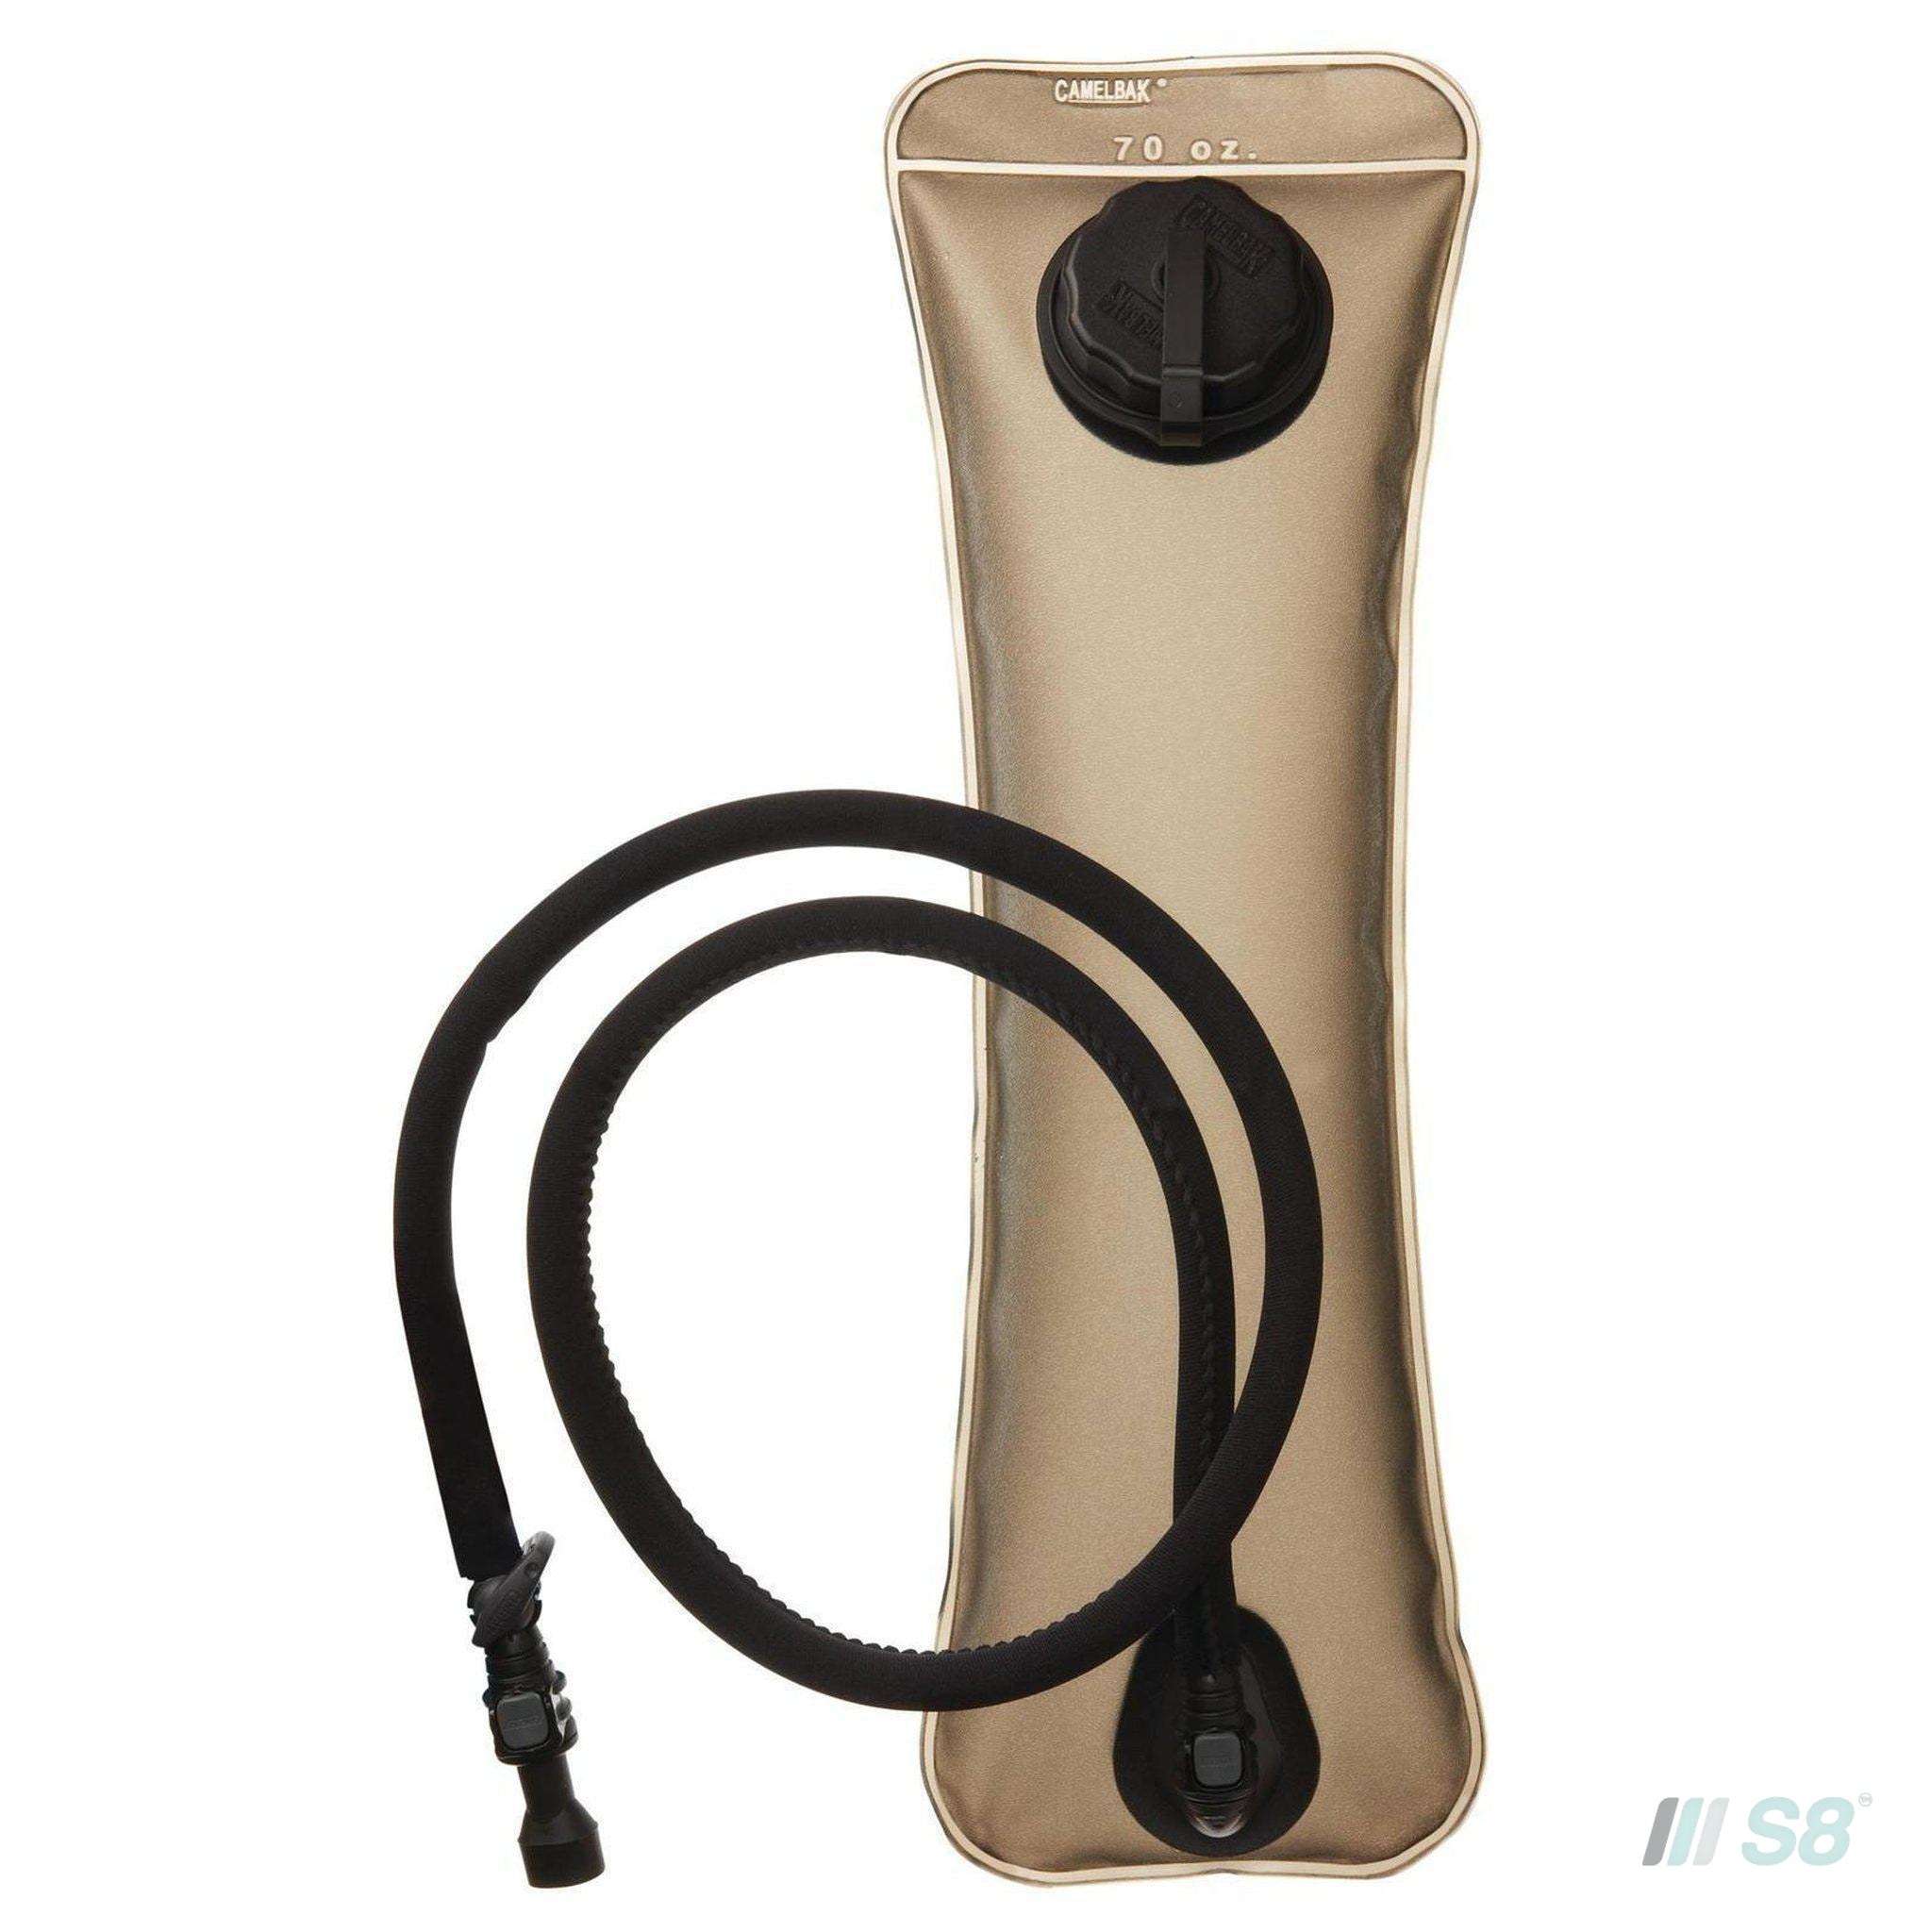 Camelbak 3.0L Mg Long Neck Reservoir-Camelbak-S8 Products Group